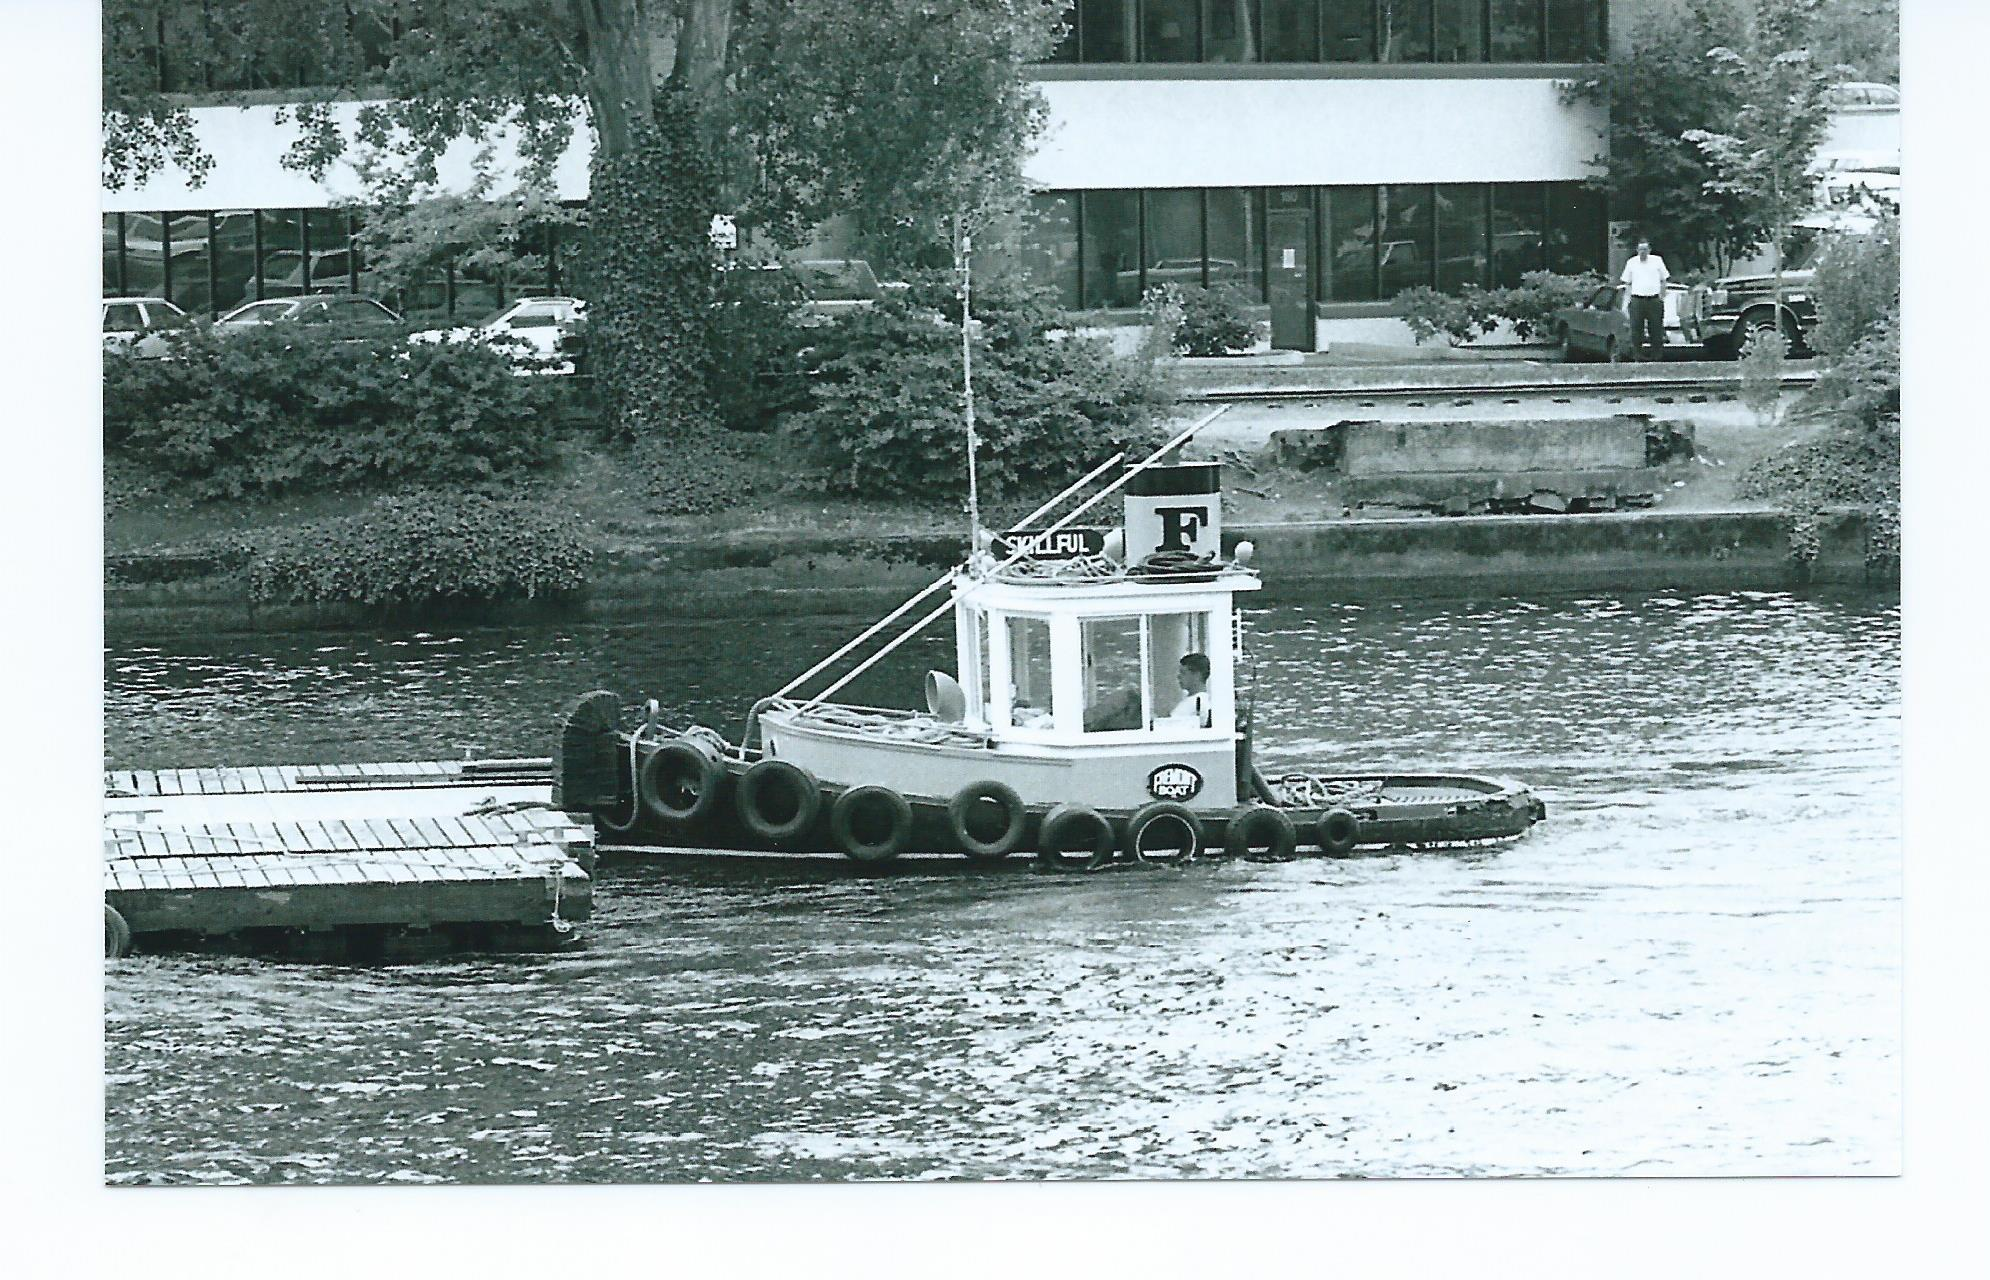 FREMONT TUGS SKILLFULL TAILING BOATS AFLOAT SHOW FLOATS..jpg